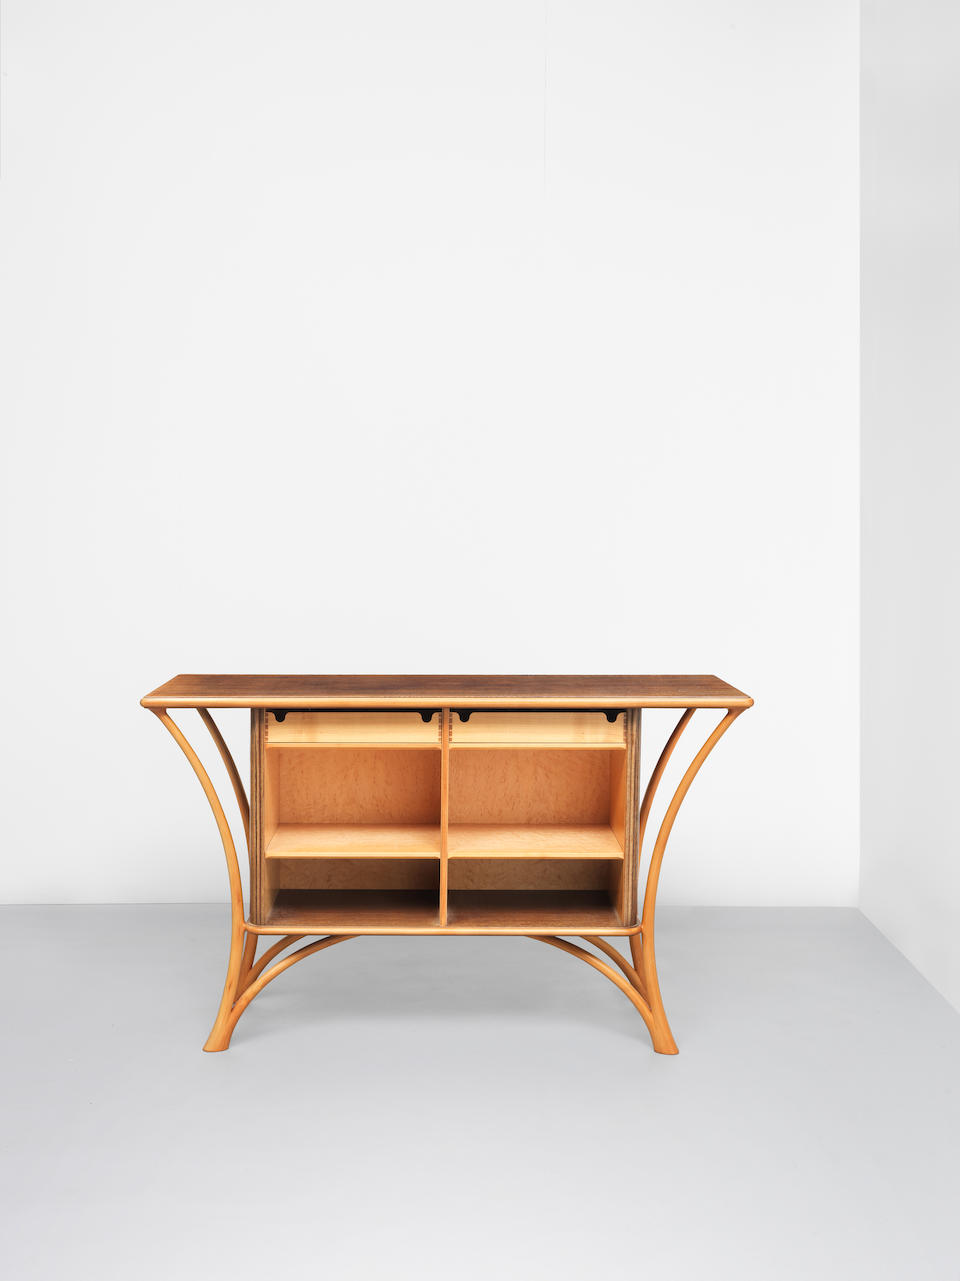 John Makepeace OBE Unique sideboard with tambour doors, designed for a private commission, London, 1985-1986